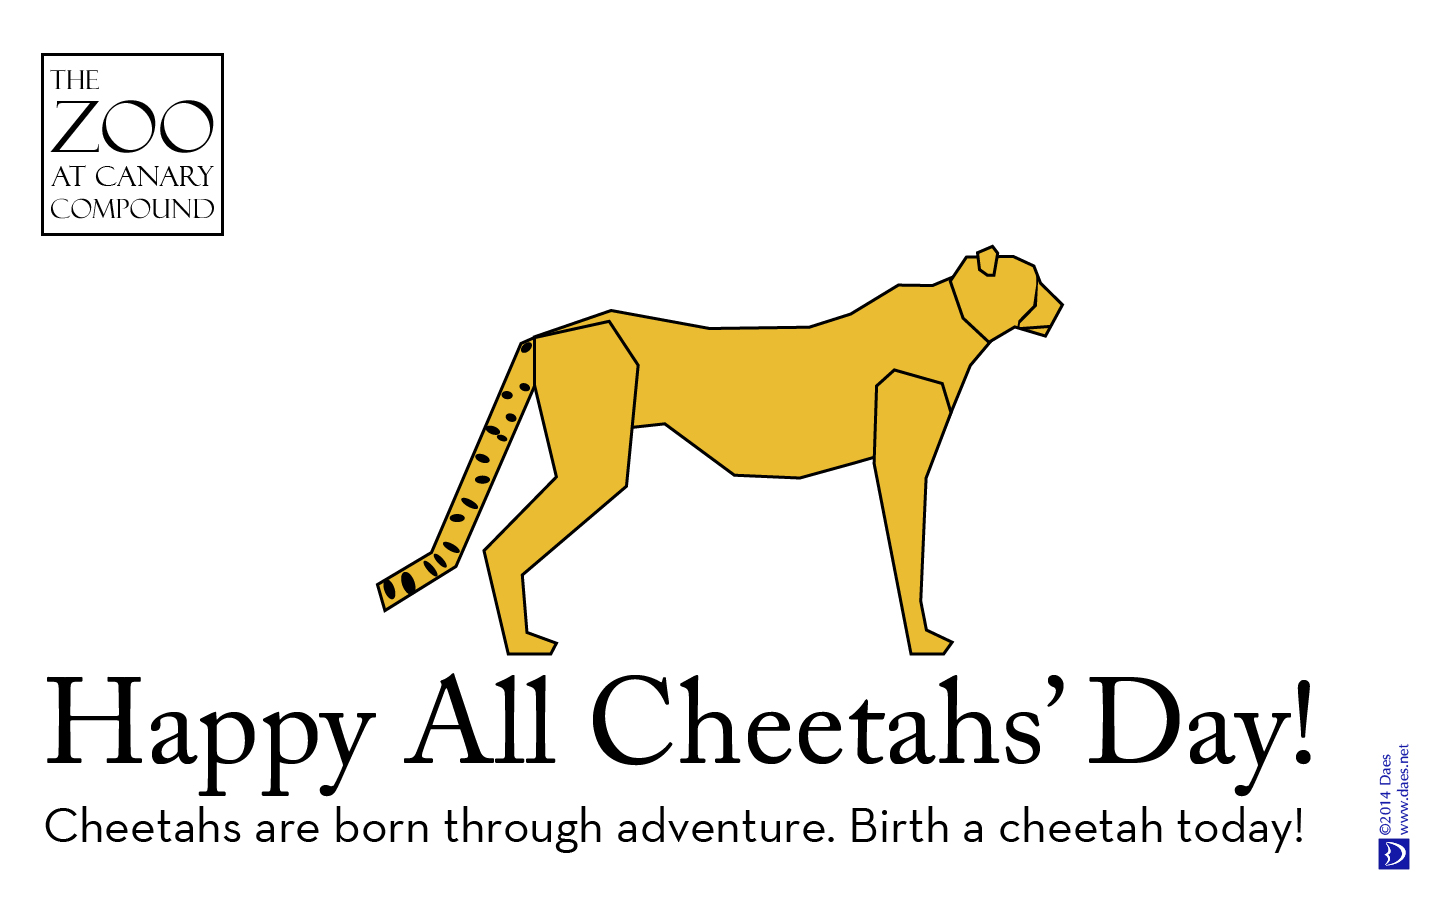 Cheetahs are born through adventure. Birth a cheetah today!